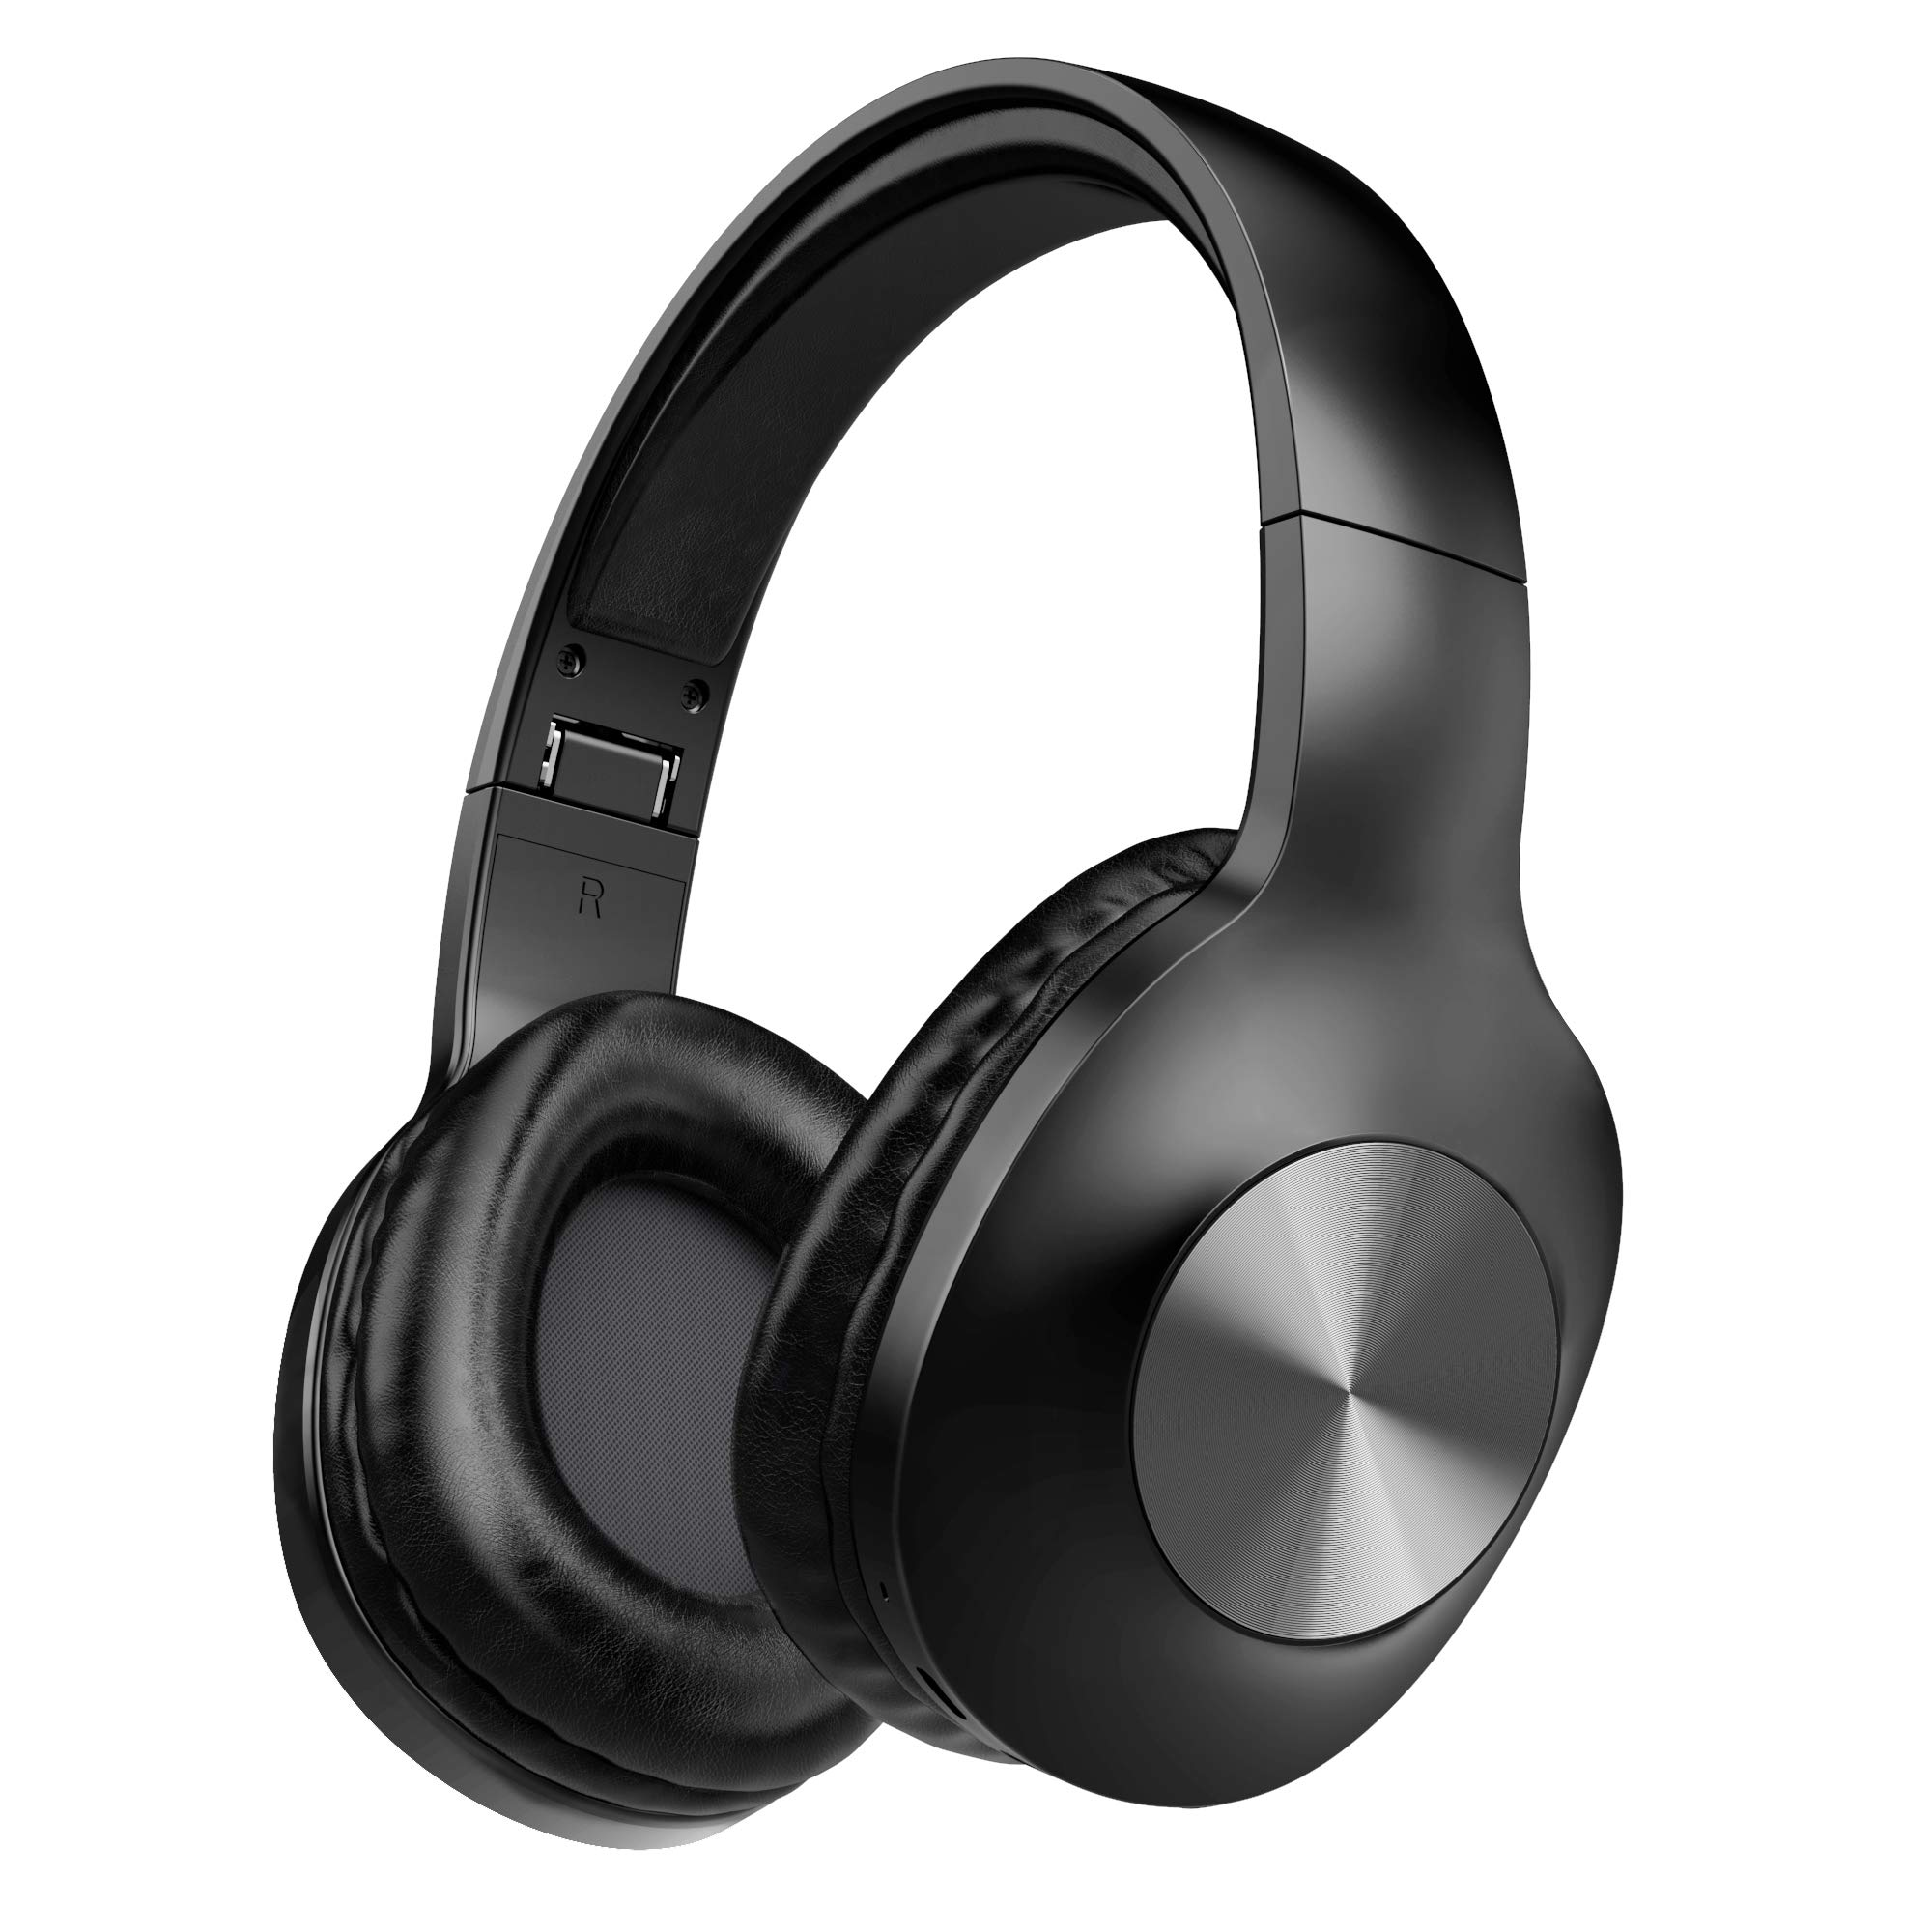 Bluetooth Headphones, Letscom Wireless Headphones Over Ear with Hi-Fi Sound Mic Deep Bass, 100 Hours Playtime and Soft Memory Protein Earpads for Travel Work TV PC Cellphone - Black by LETSCOM